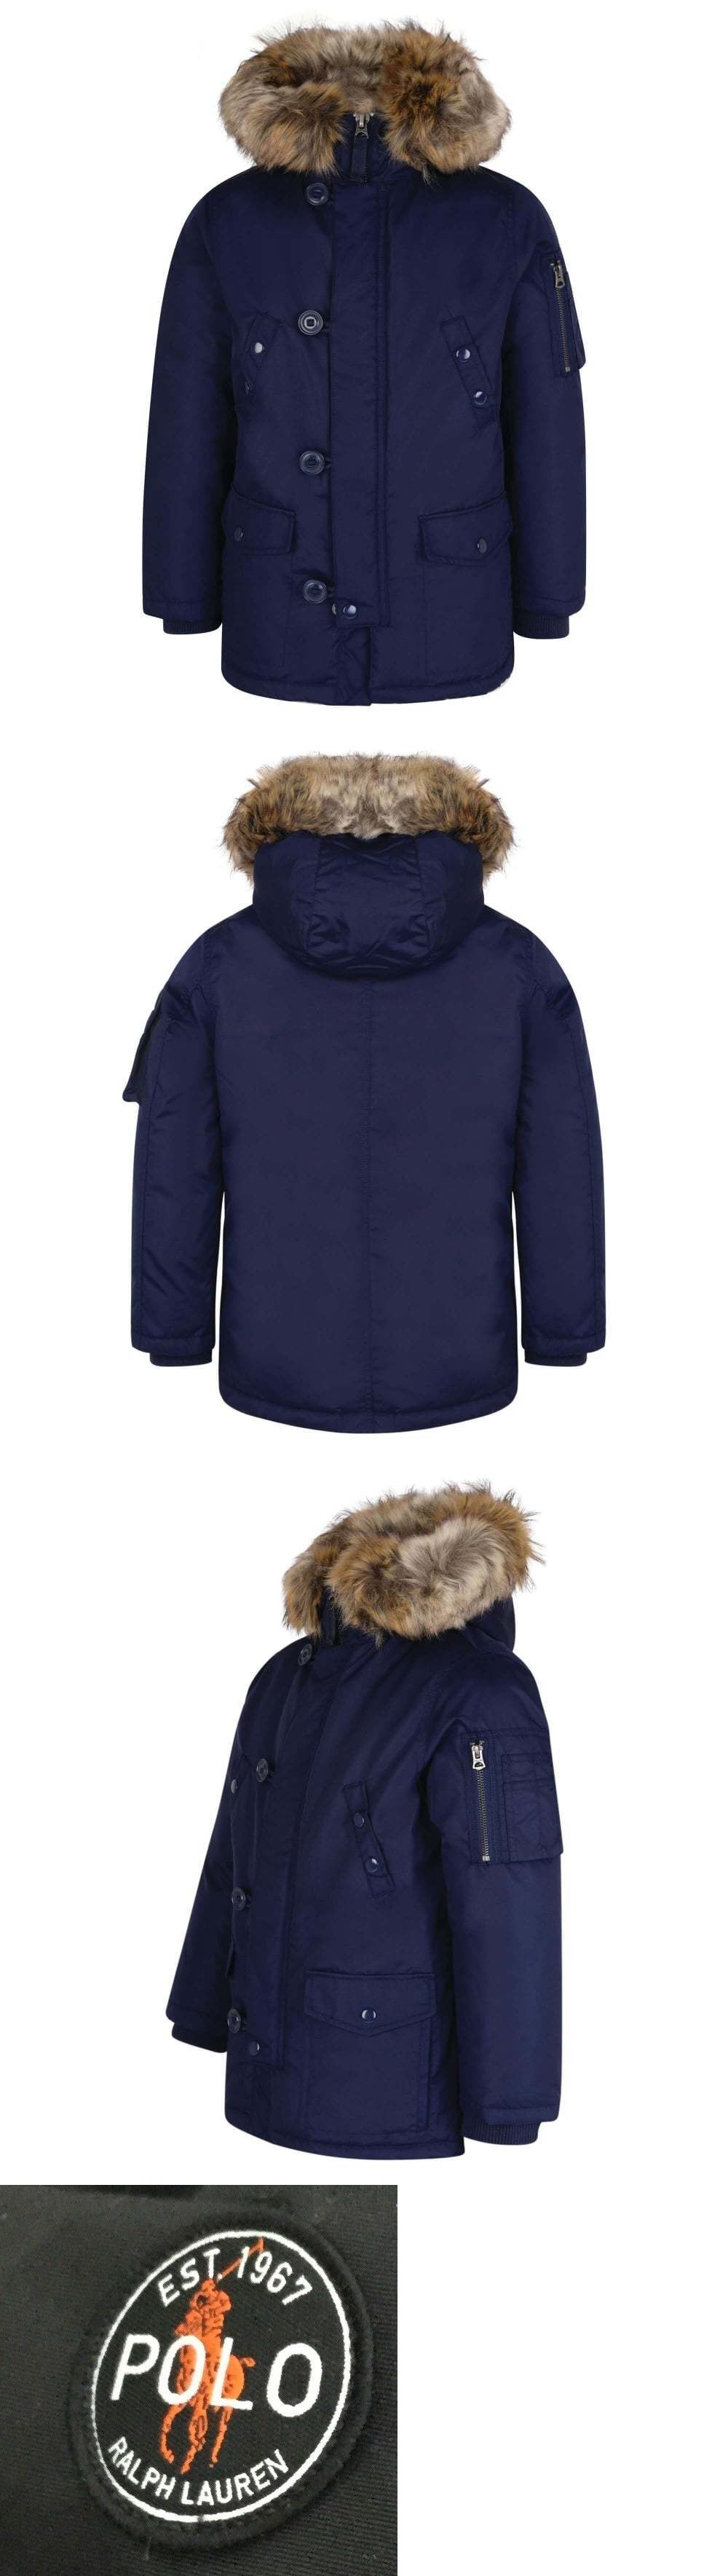 cd06dc865474 Outerwear 51933  Polo Ralph Lauren Boys Fur Trim Winter Coat Jacket  Outerwear Choose Color